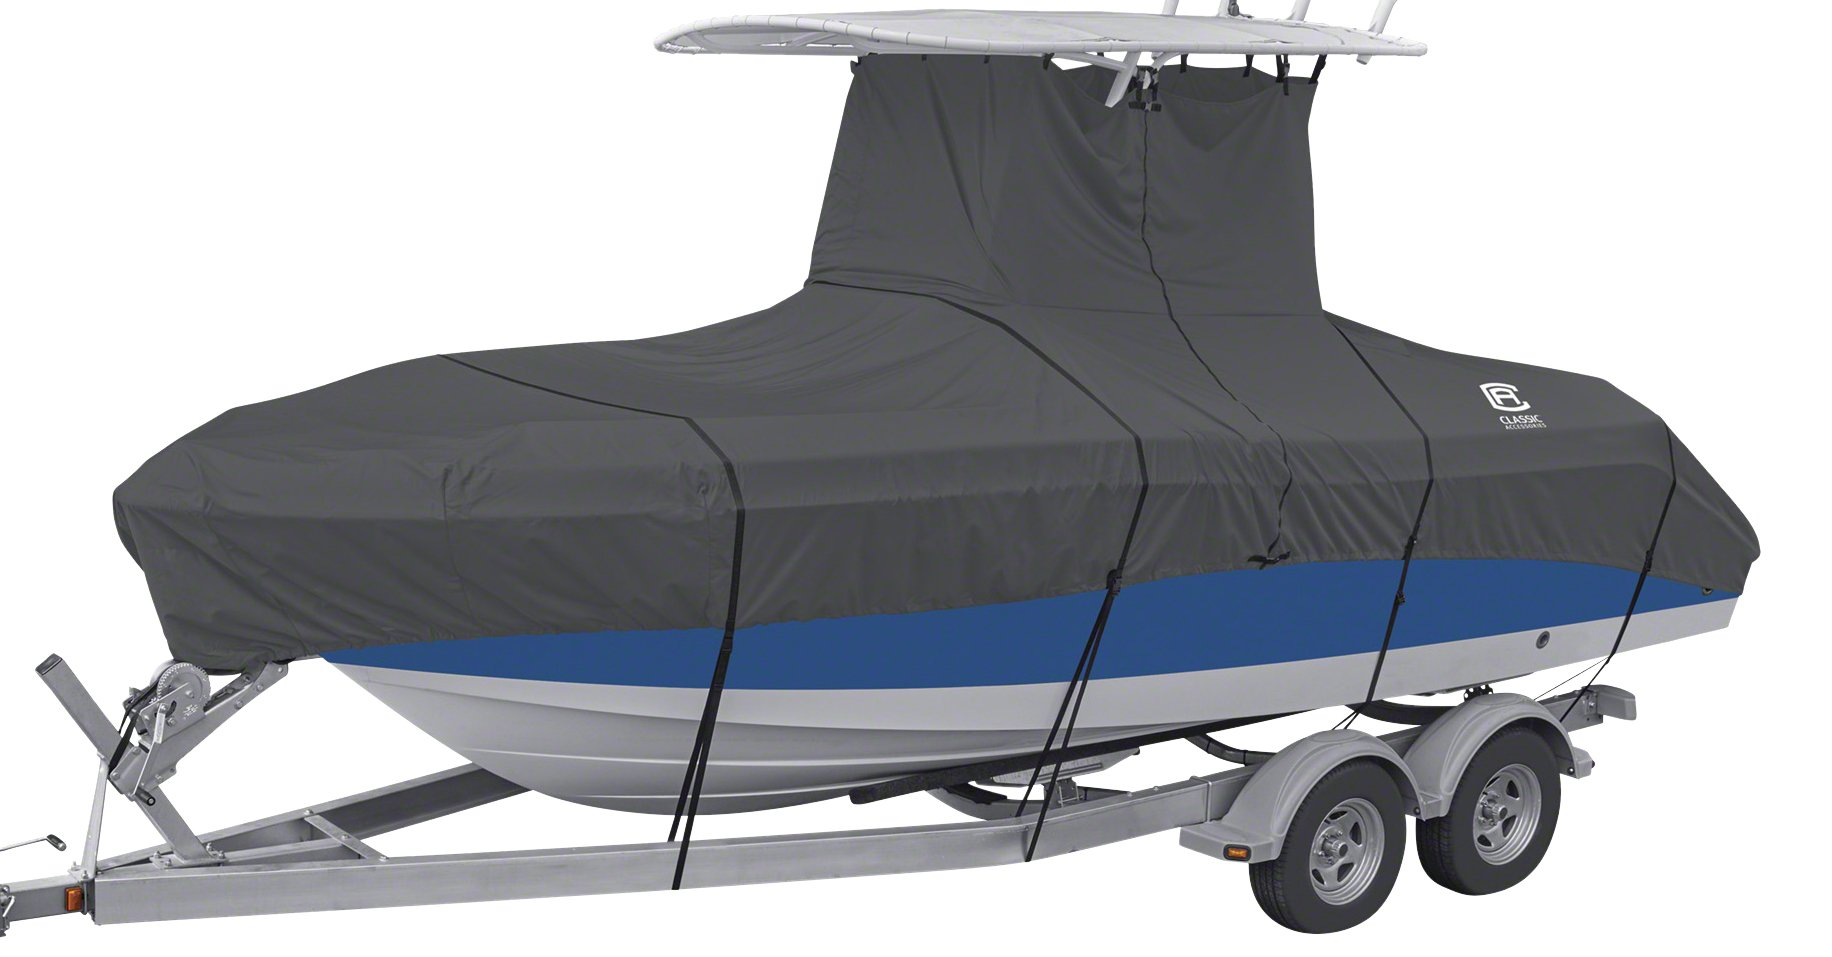 Classic Accessories StormPro Heavy Duty Center Console T-Top Roof Boat Cover, For 20'-22' Long, up to 106'' Beam Width by Classic Accessories